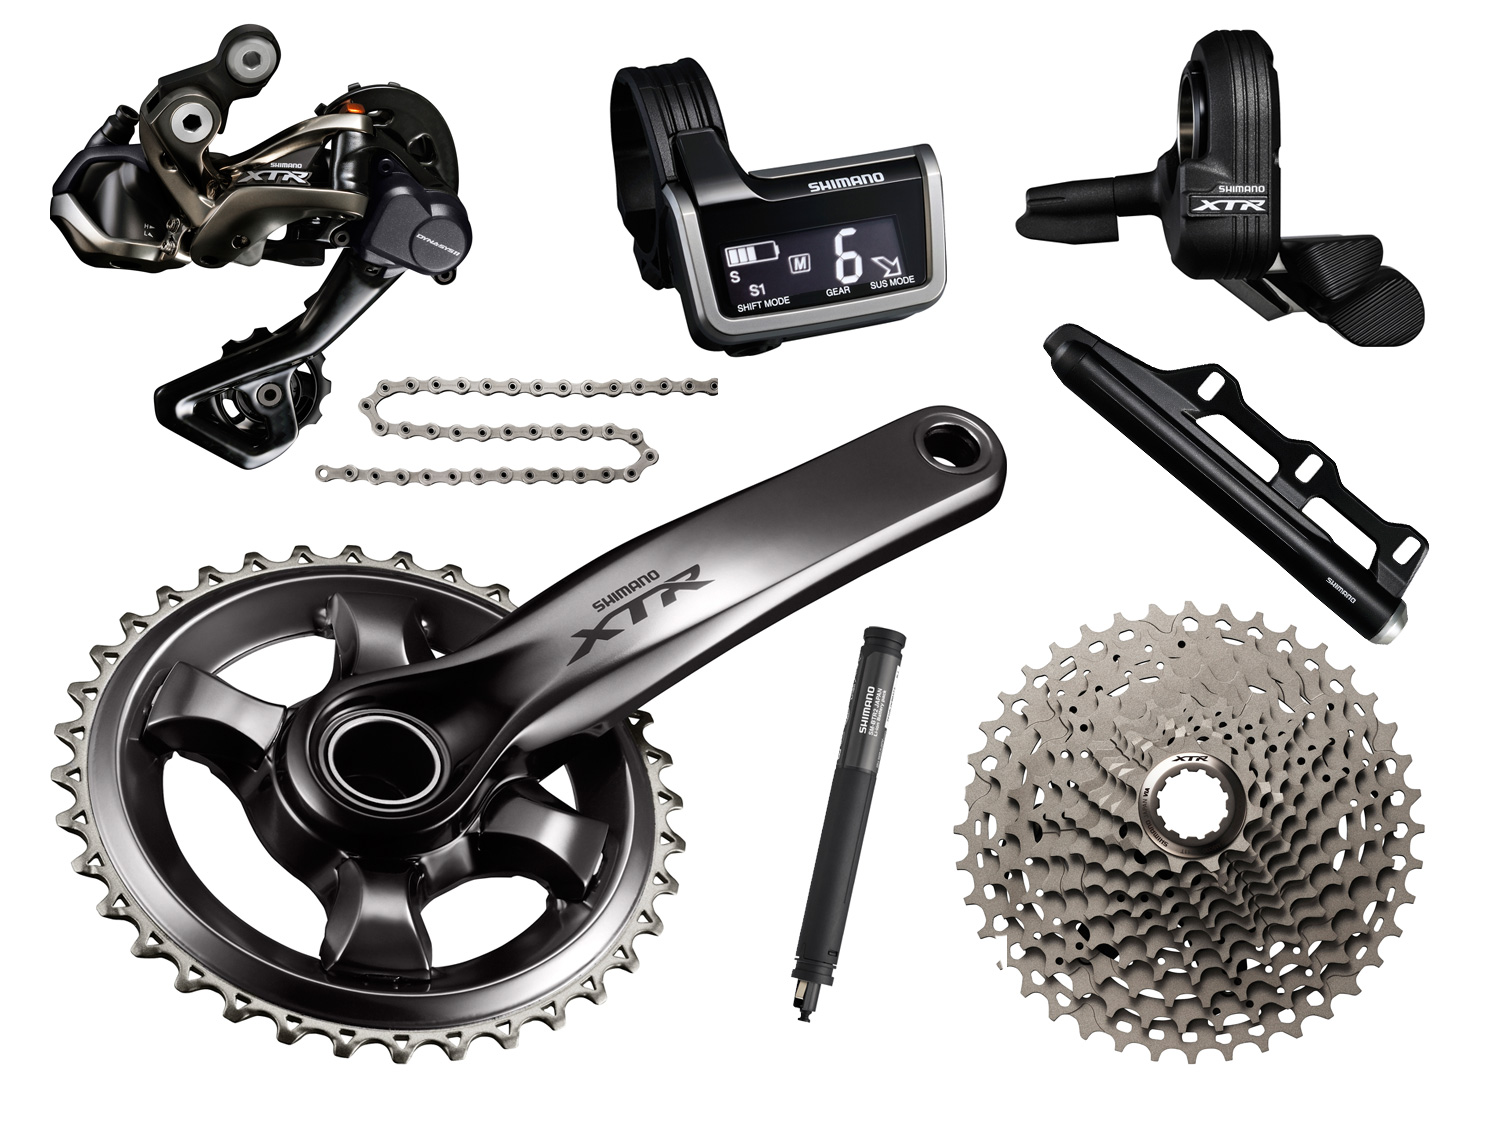 Best deals on 1x11 drivetrains available right now - MBR